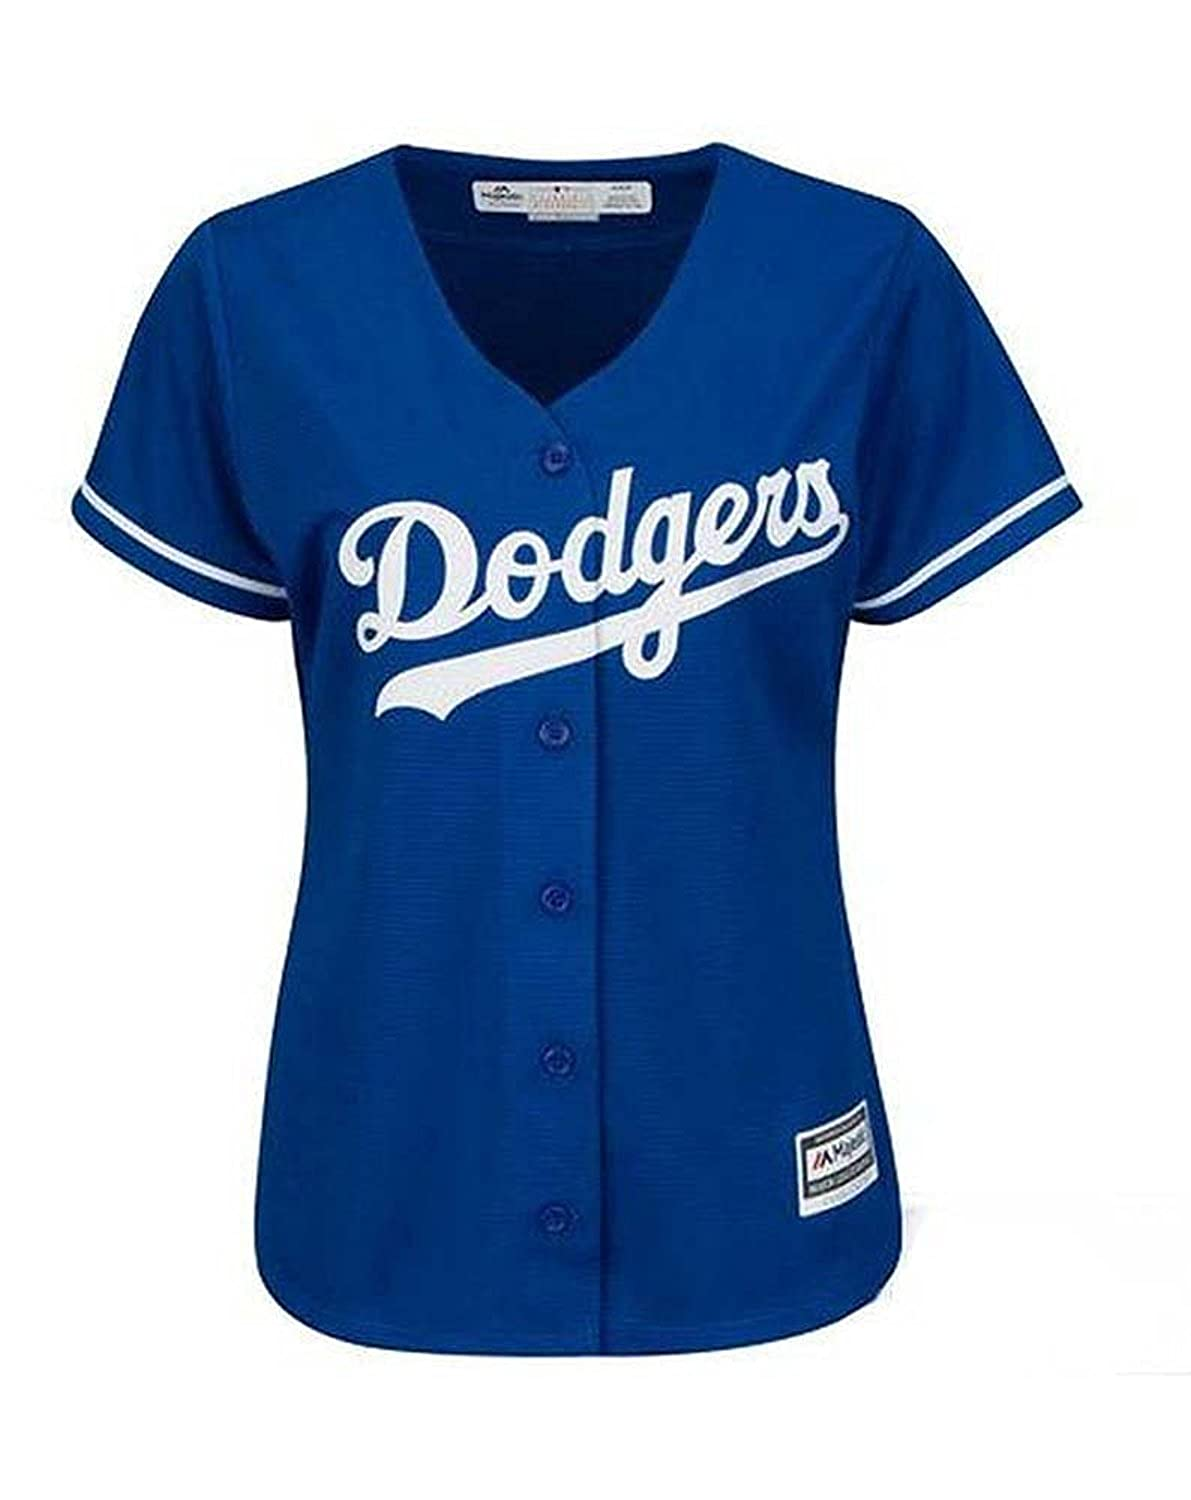 Majestic Los Angeles Dodgers Womens Jersey Blue (Medium)